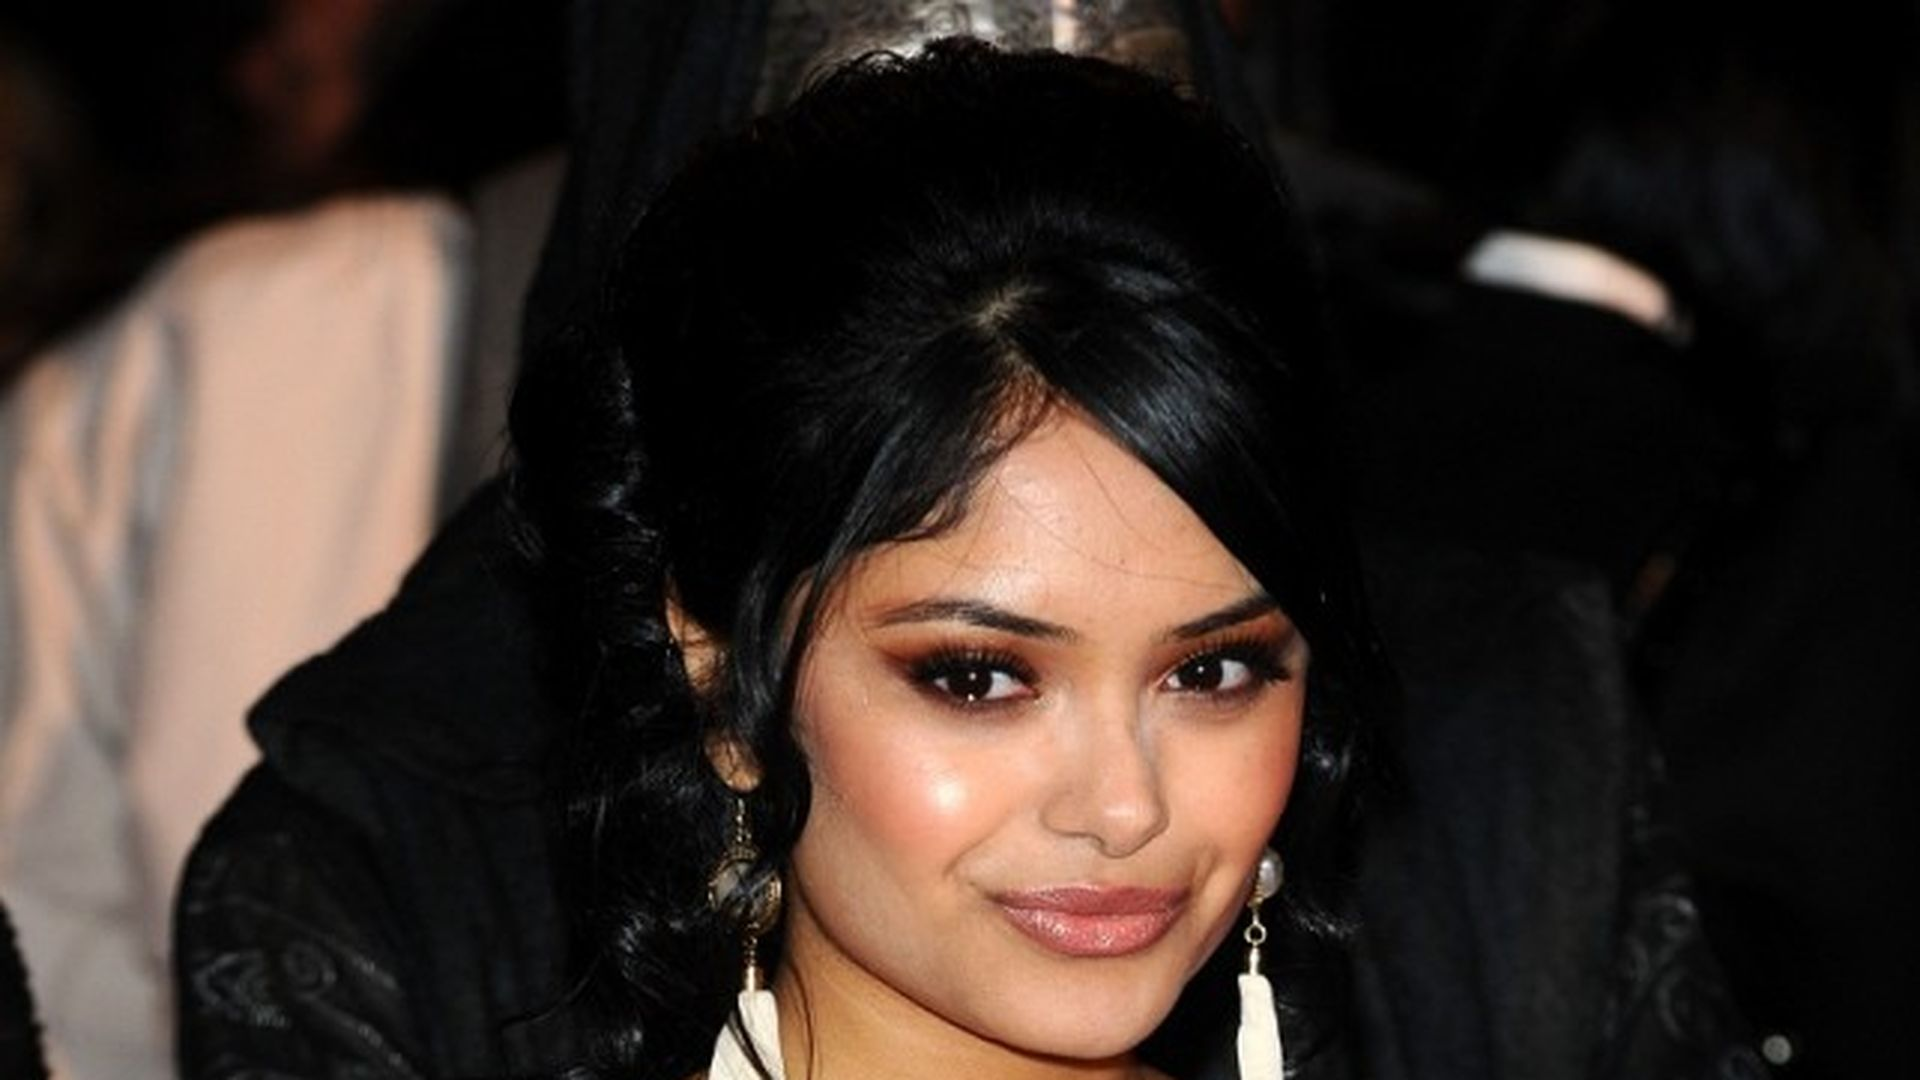 Watch Afshan Azad (born 1988) video